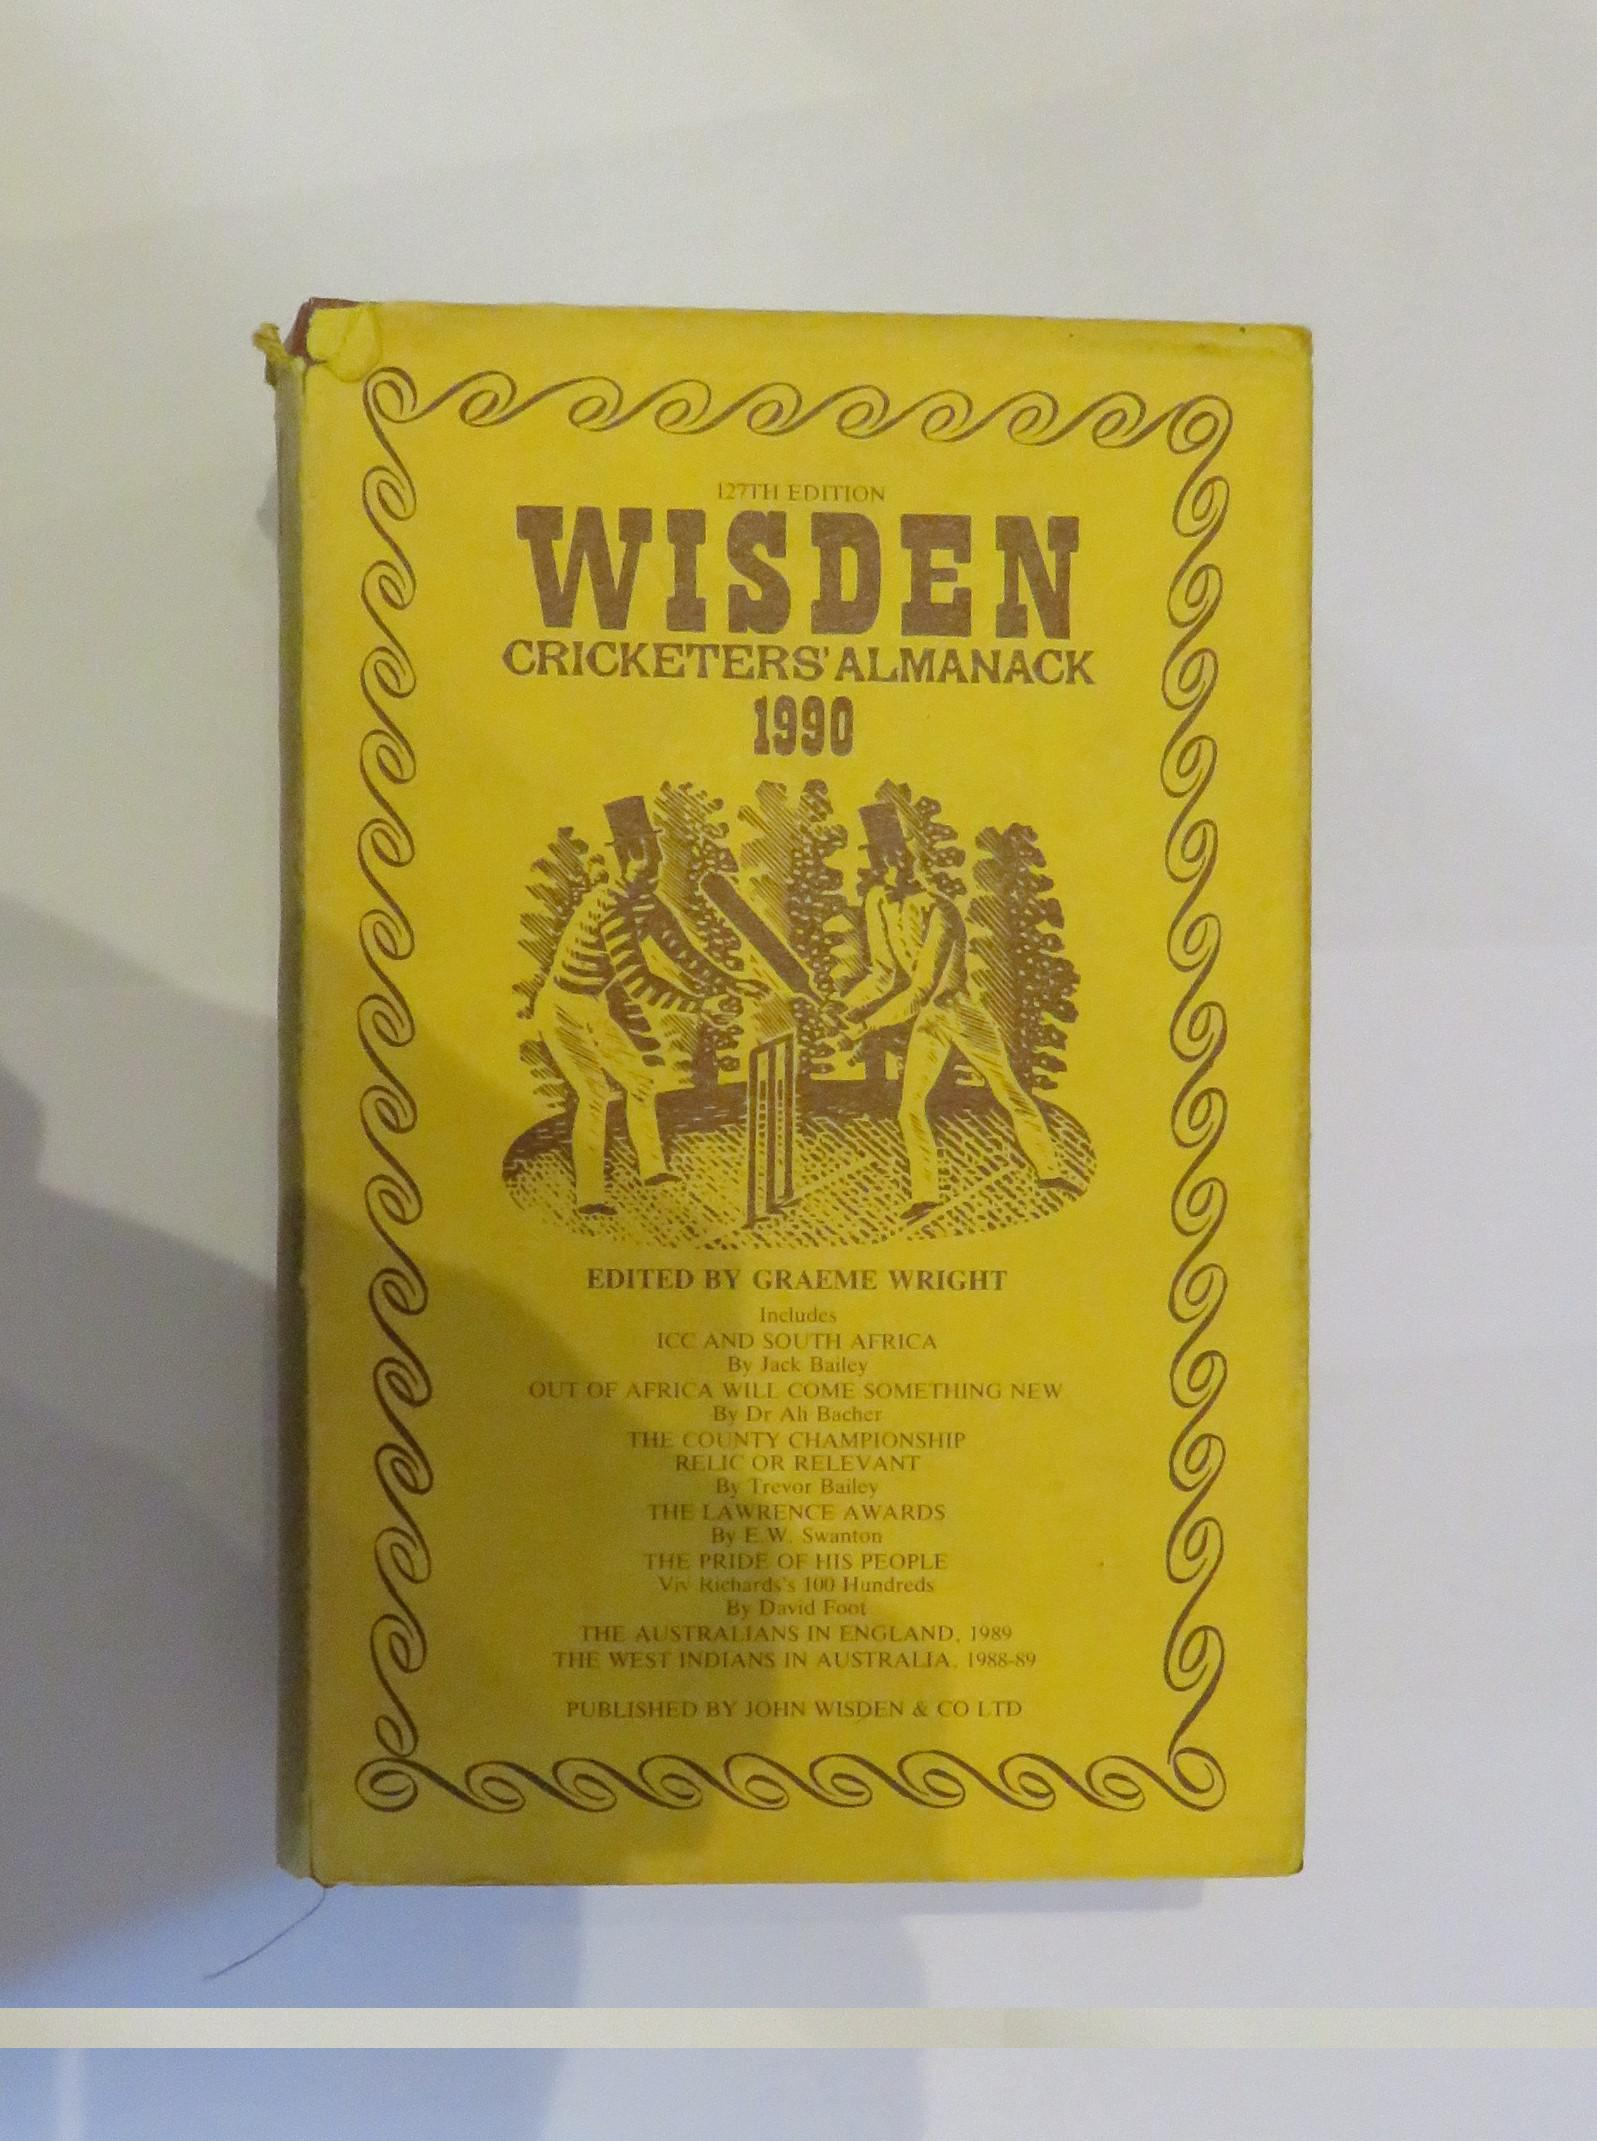 Wisden Cricketers' Almanack 1990